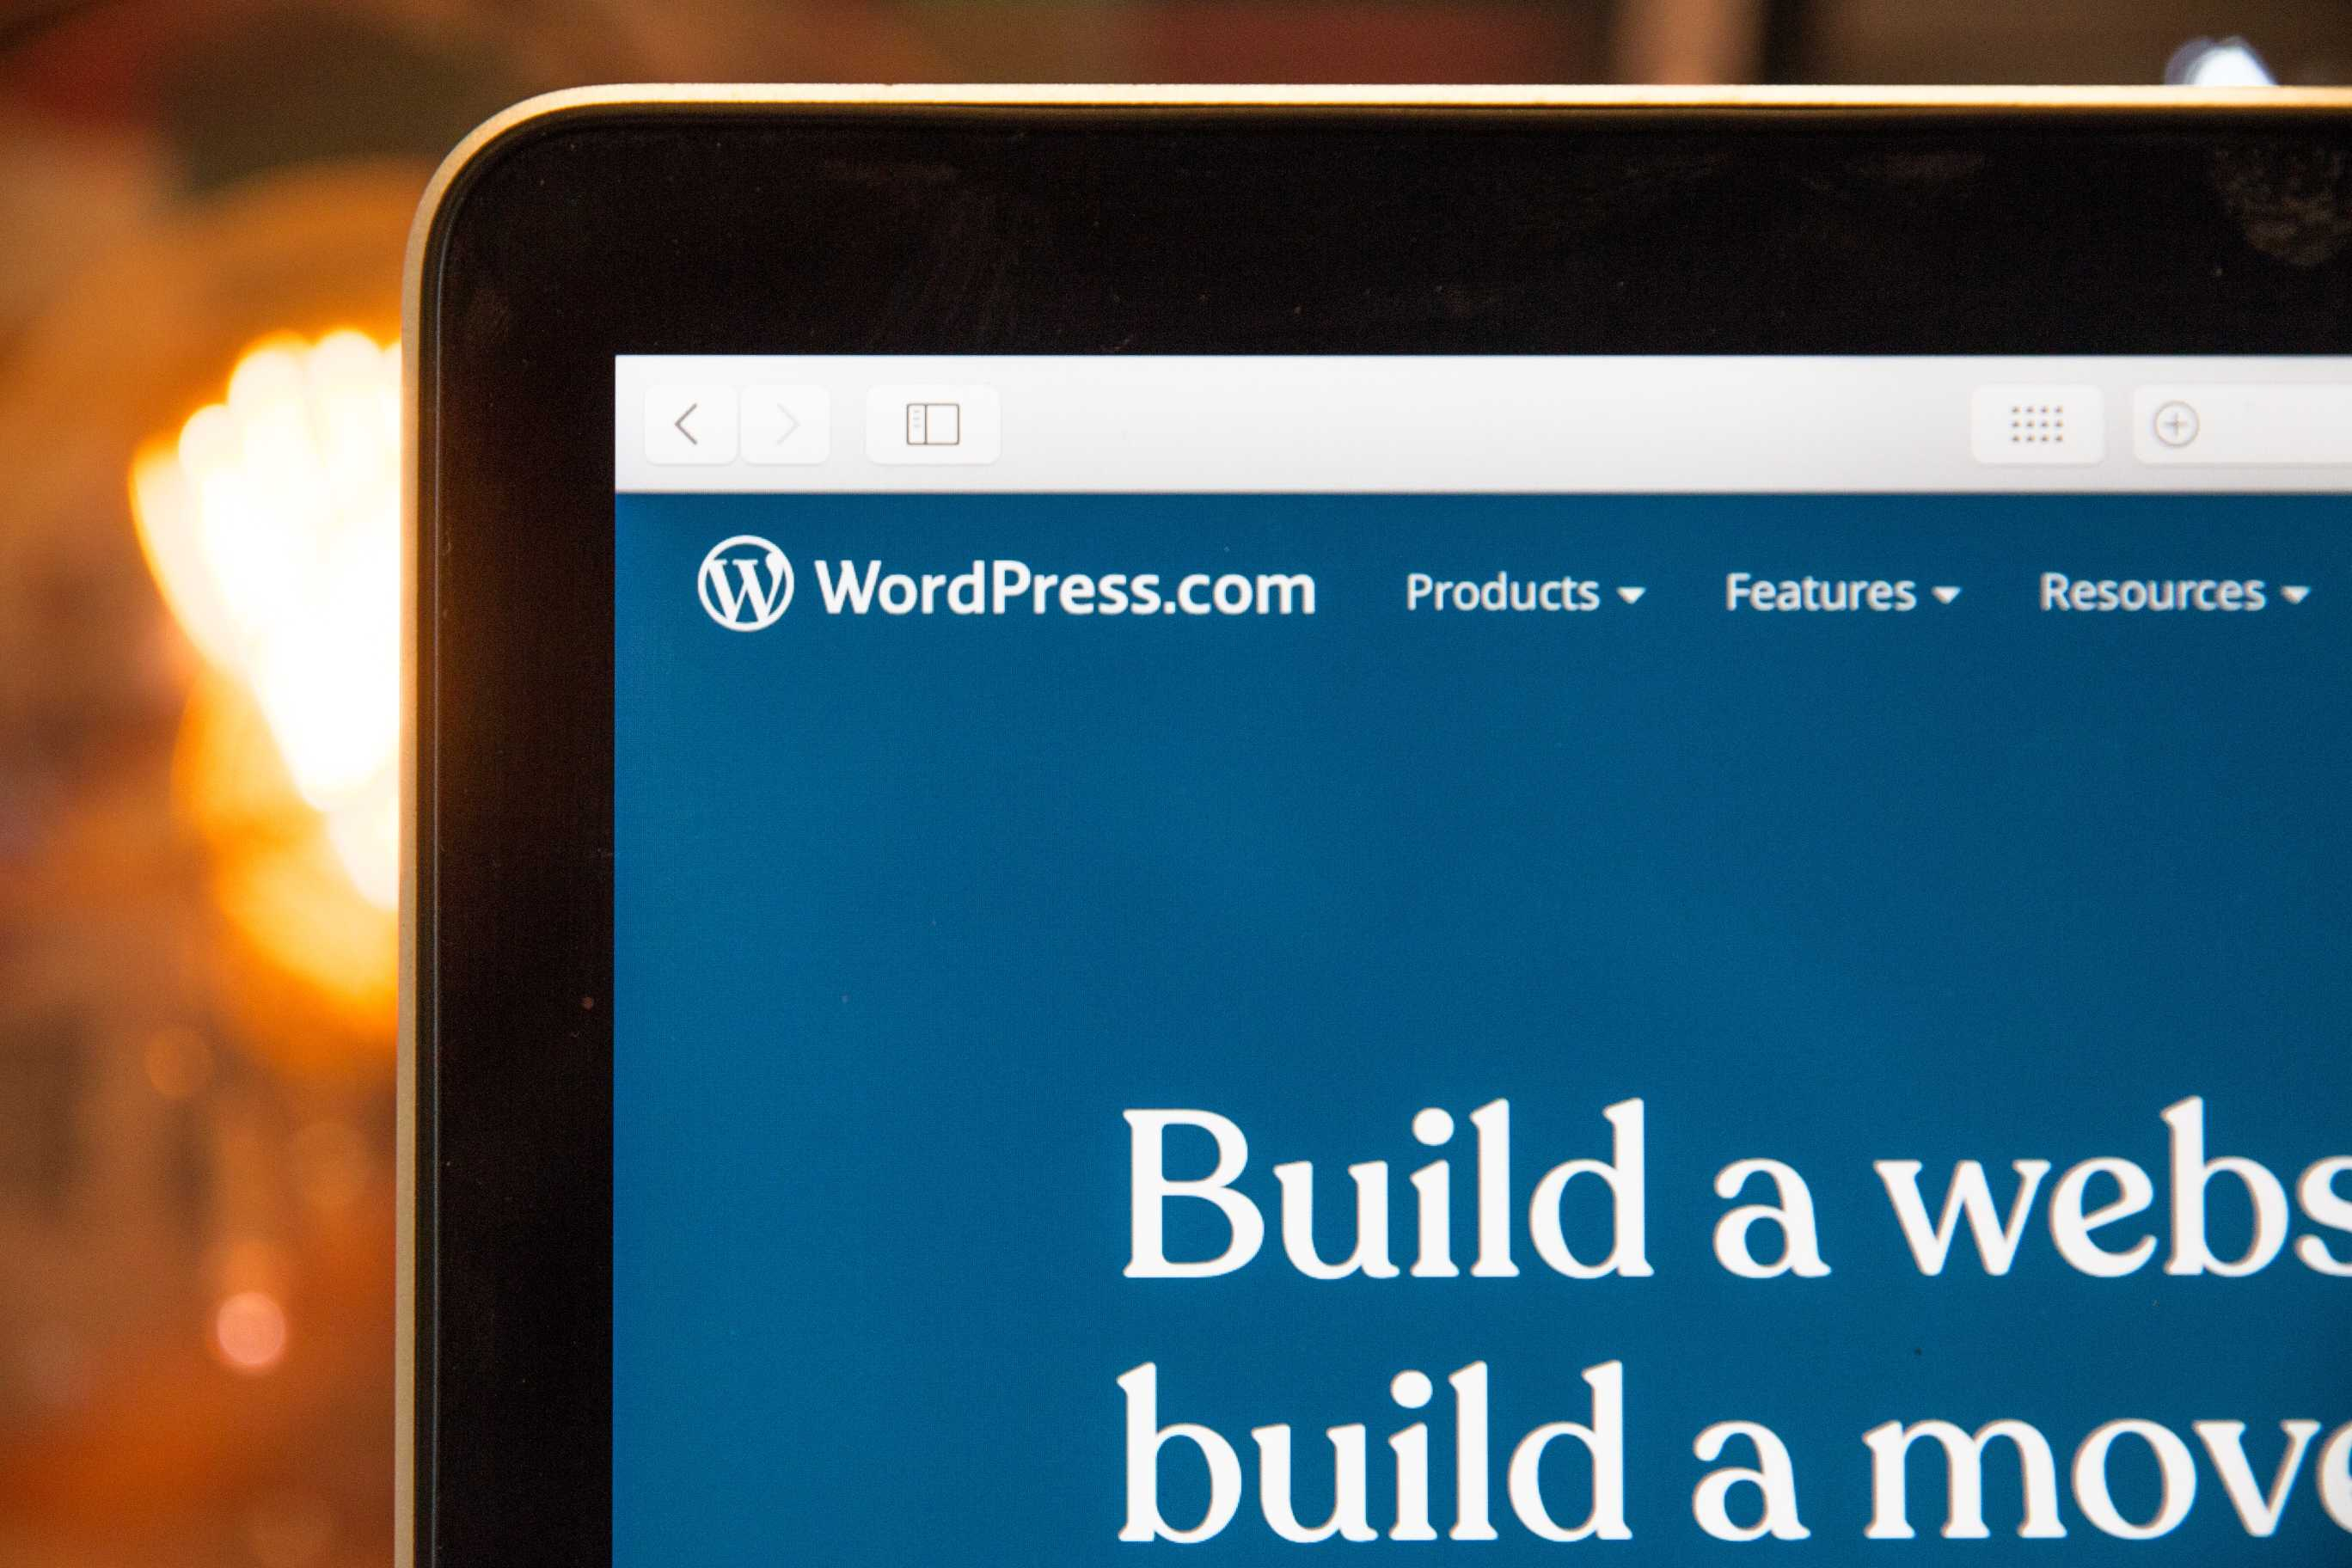 New to WordPress? Here's What You Need to Know